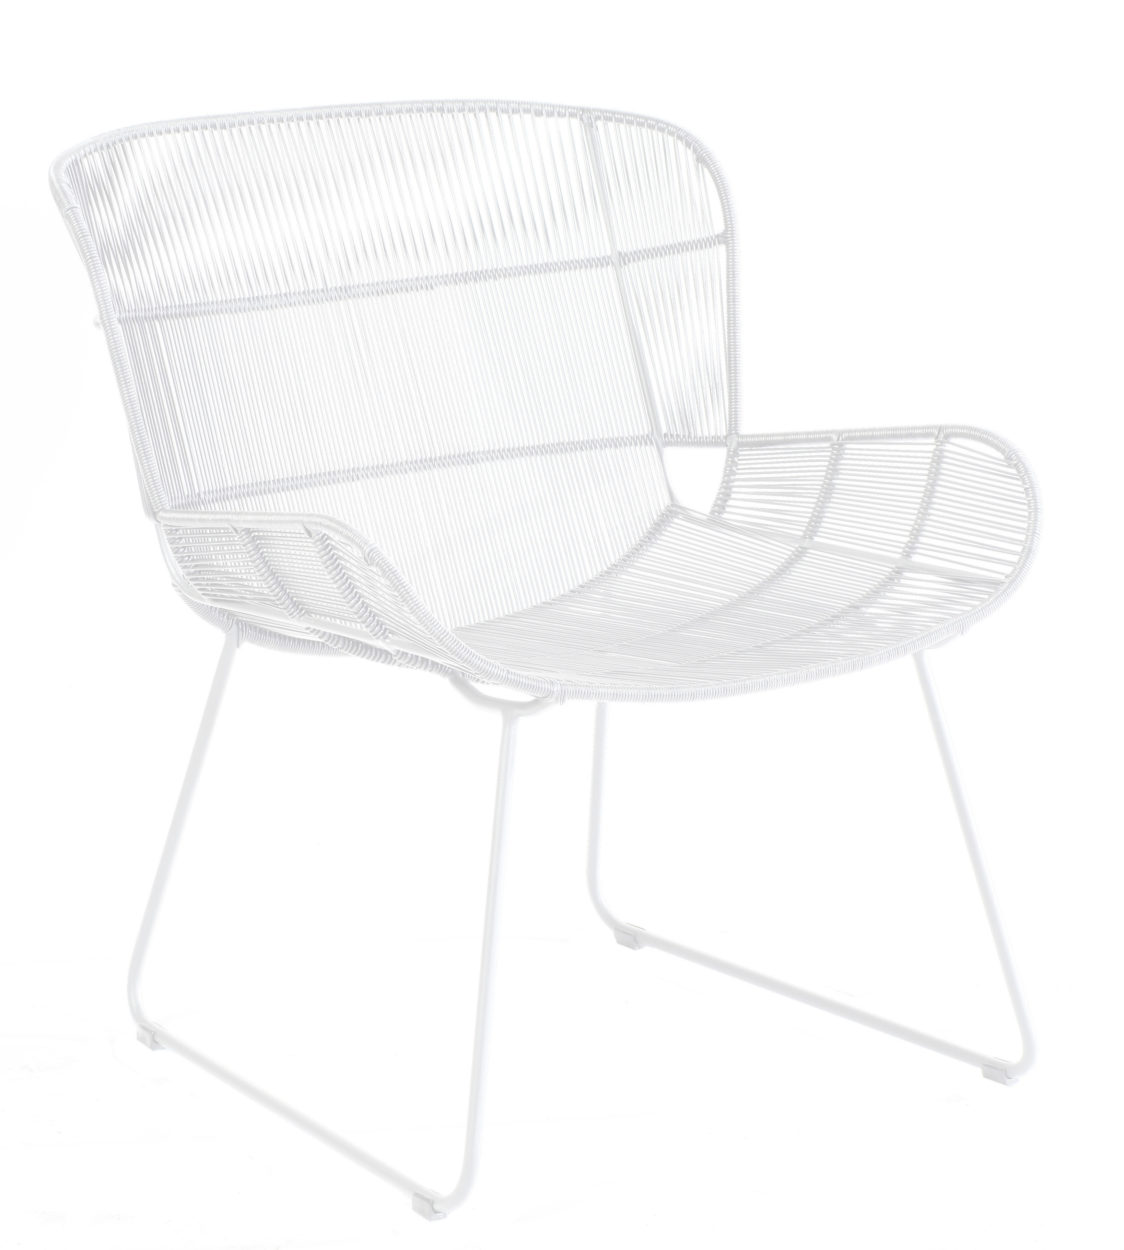 Max & Luuk Lounge Chair Faye White